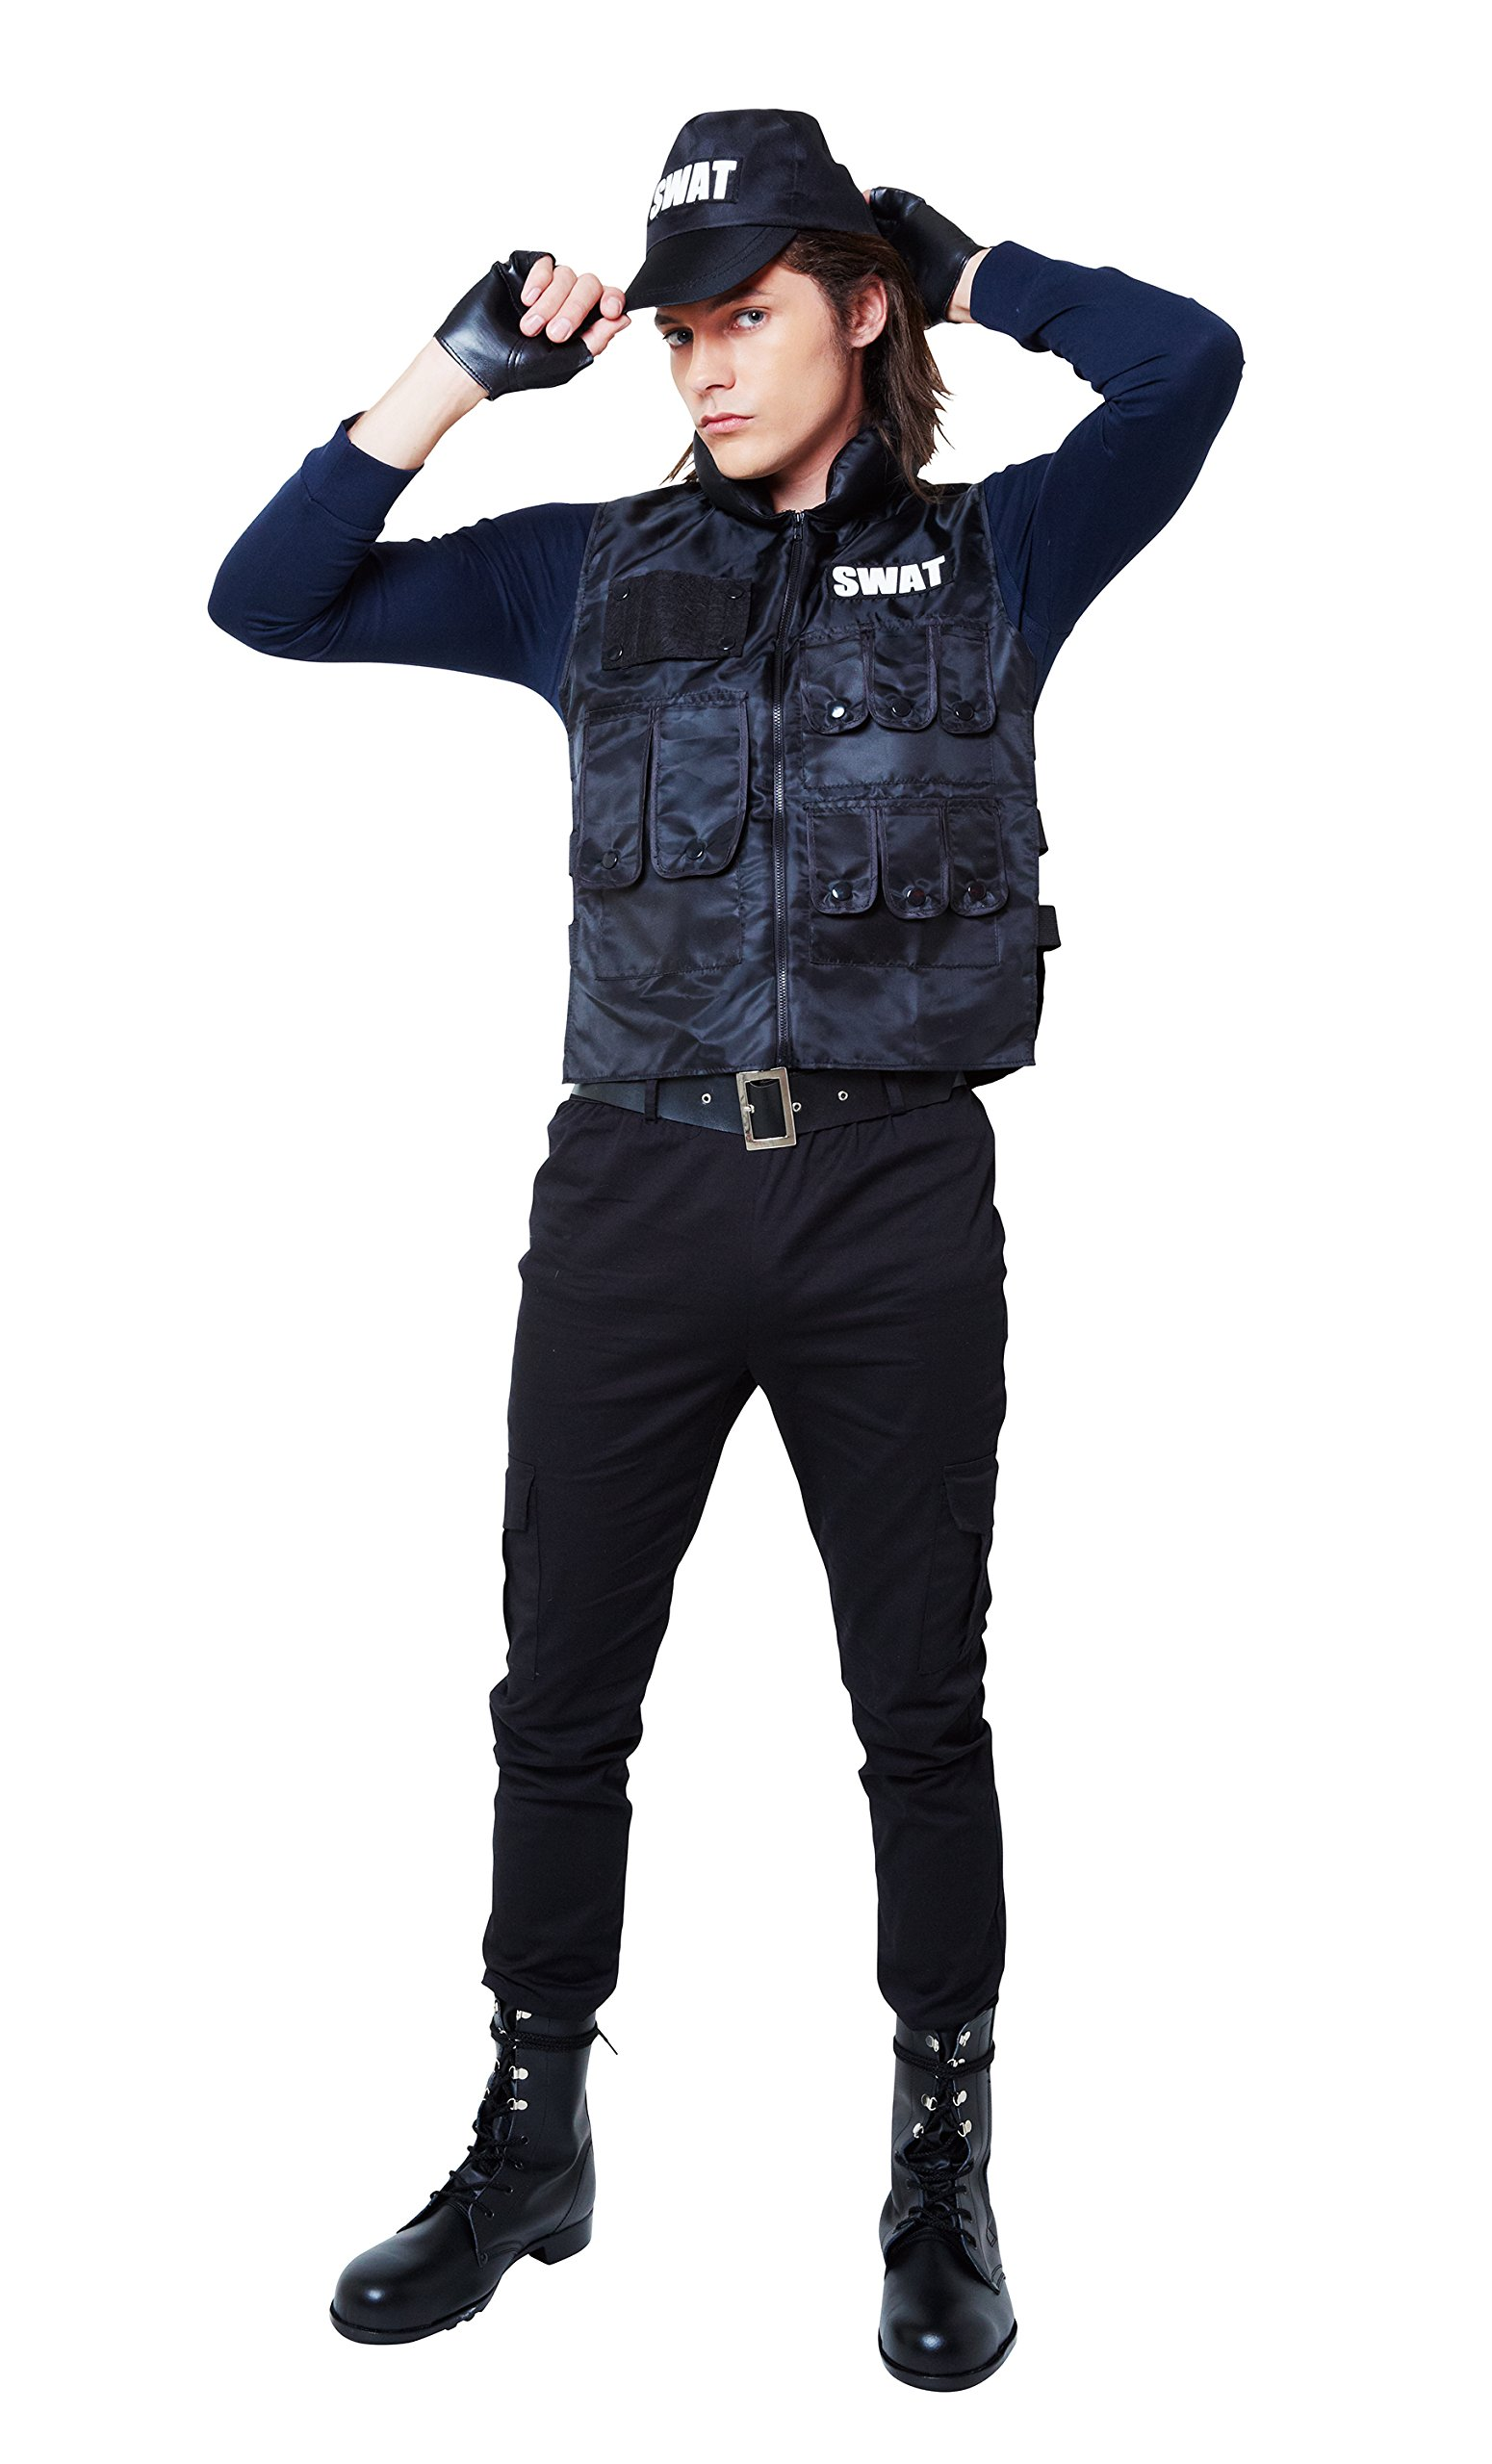 Magical SWAT costume men